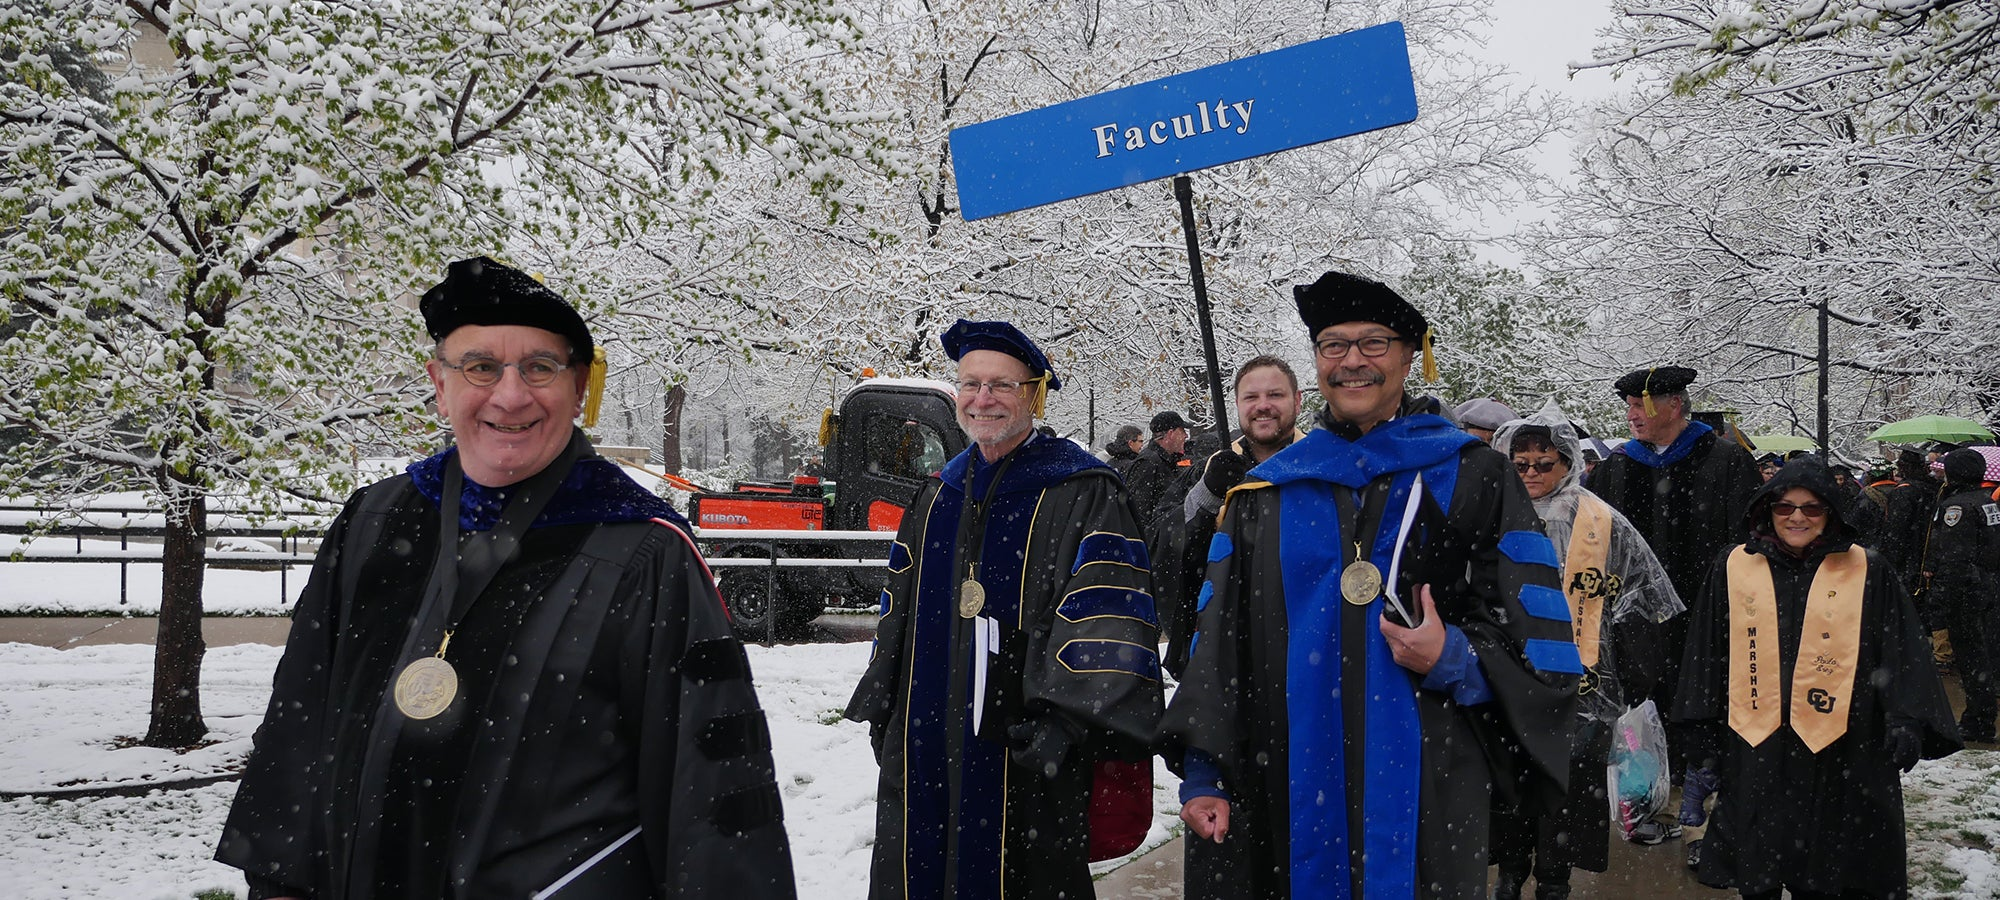 Chancellor and faculty in snowy spring 2019 commencement procession